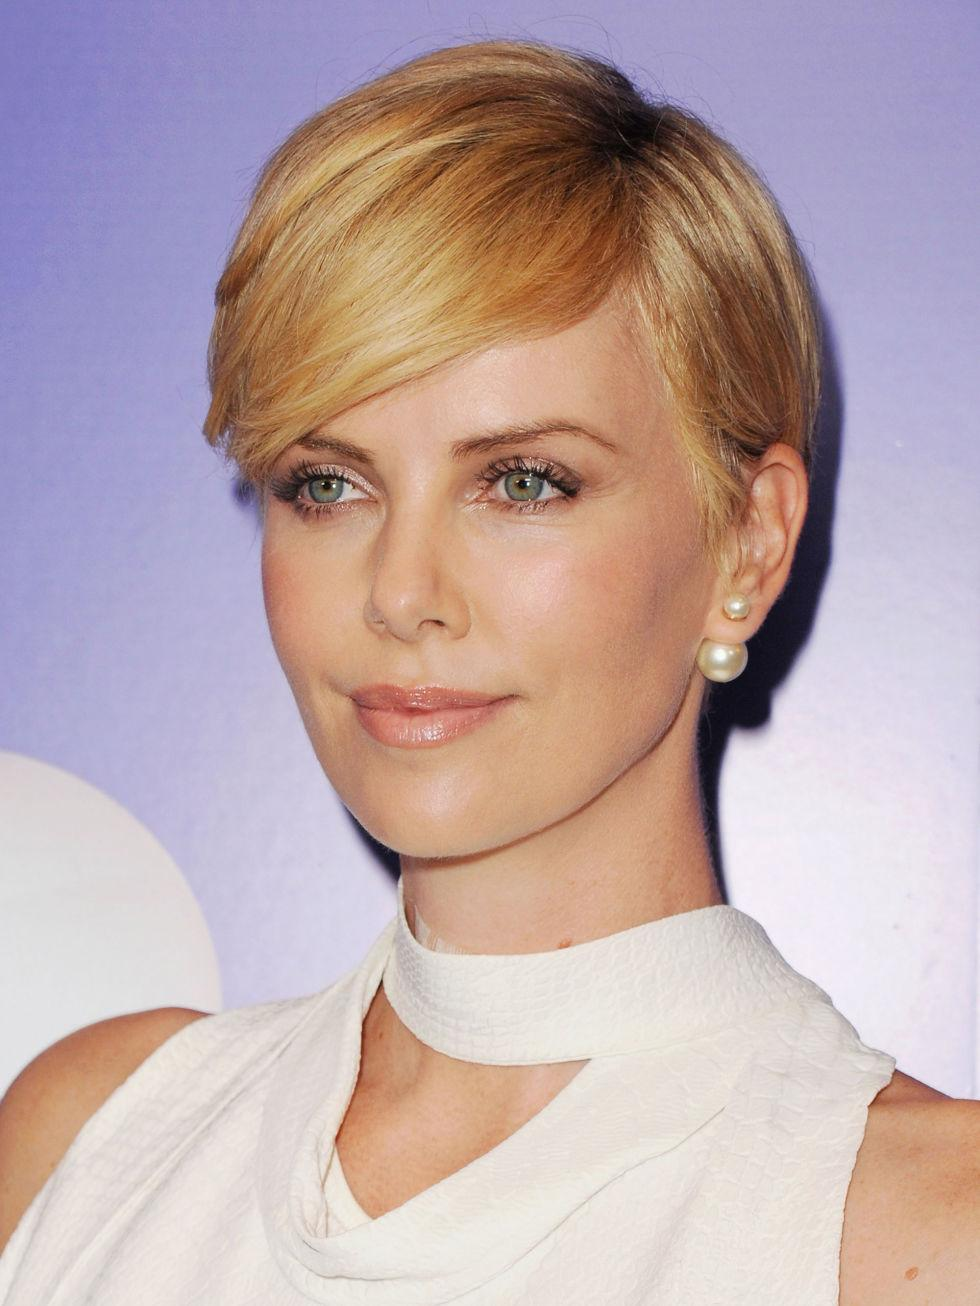 20 Women That Look Out Of This World With Short Hair